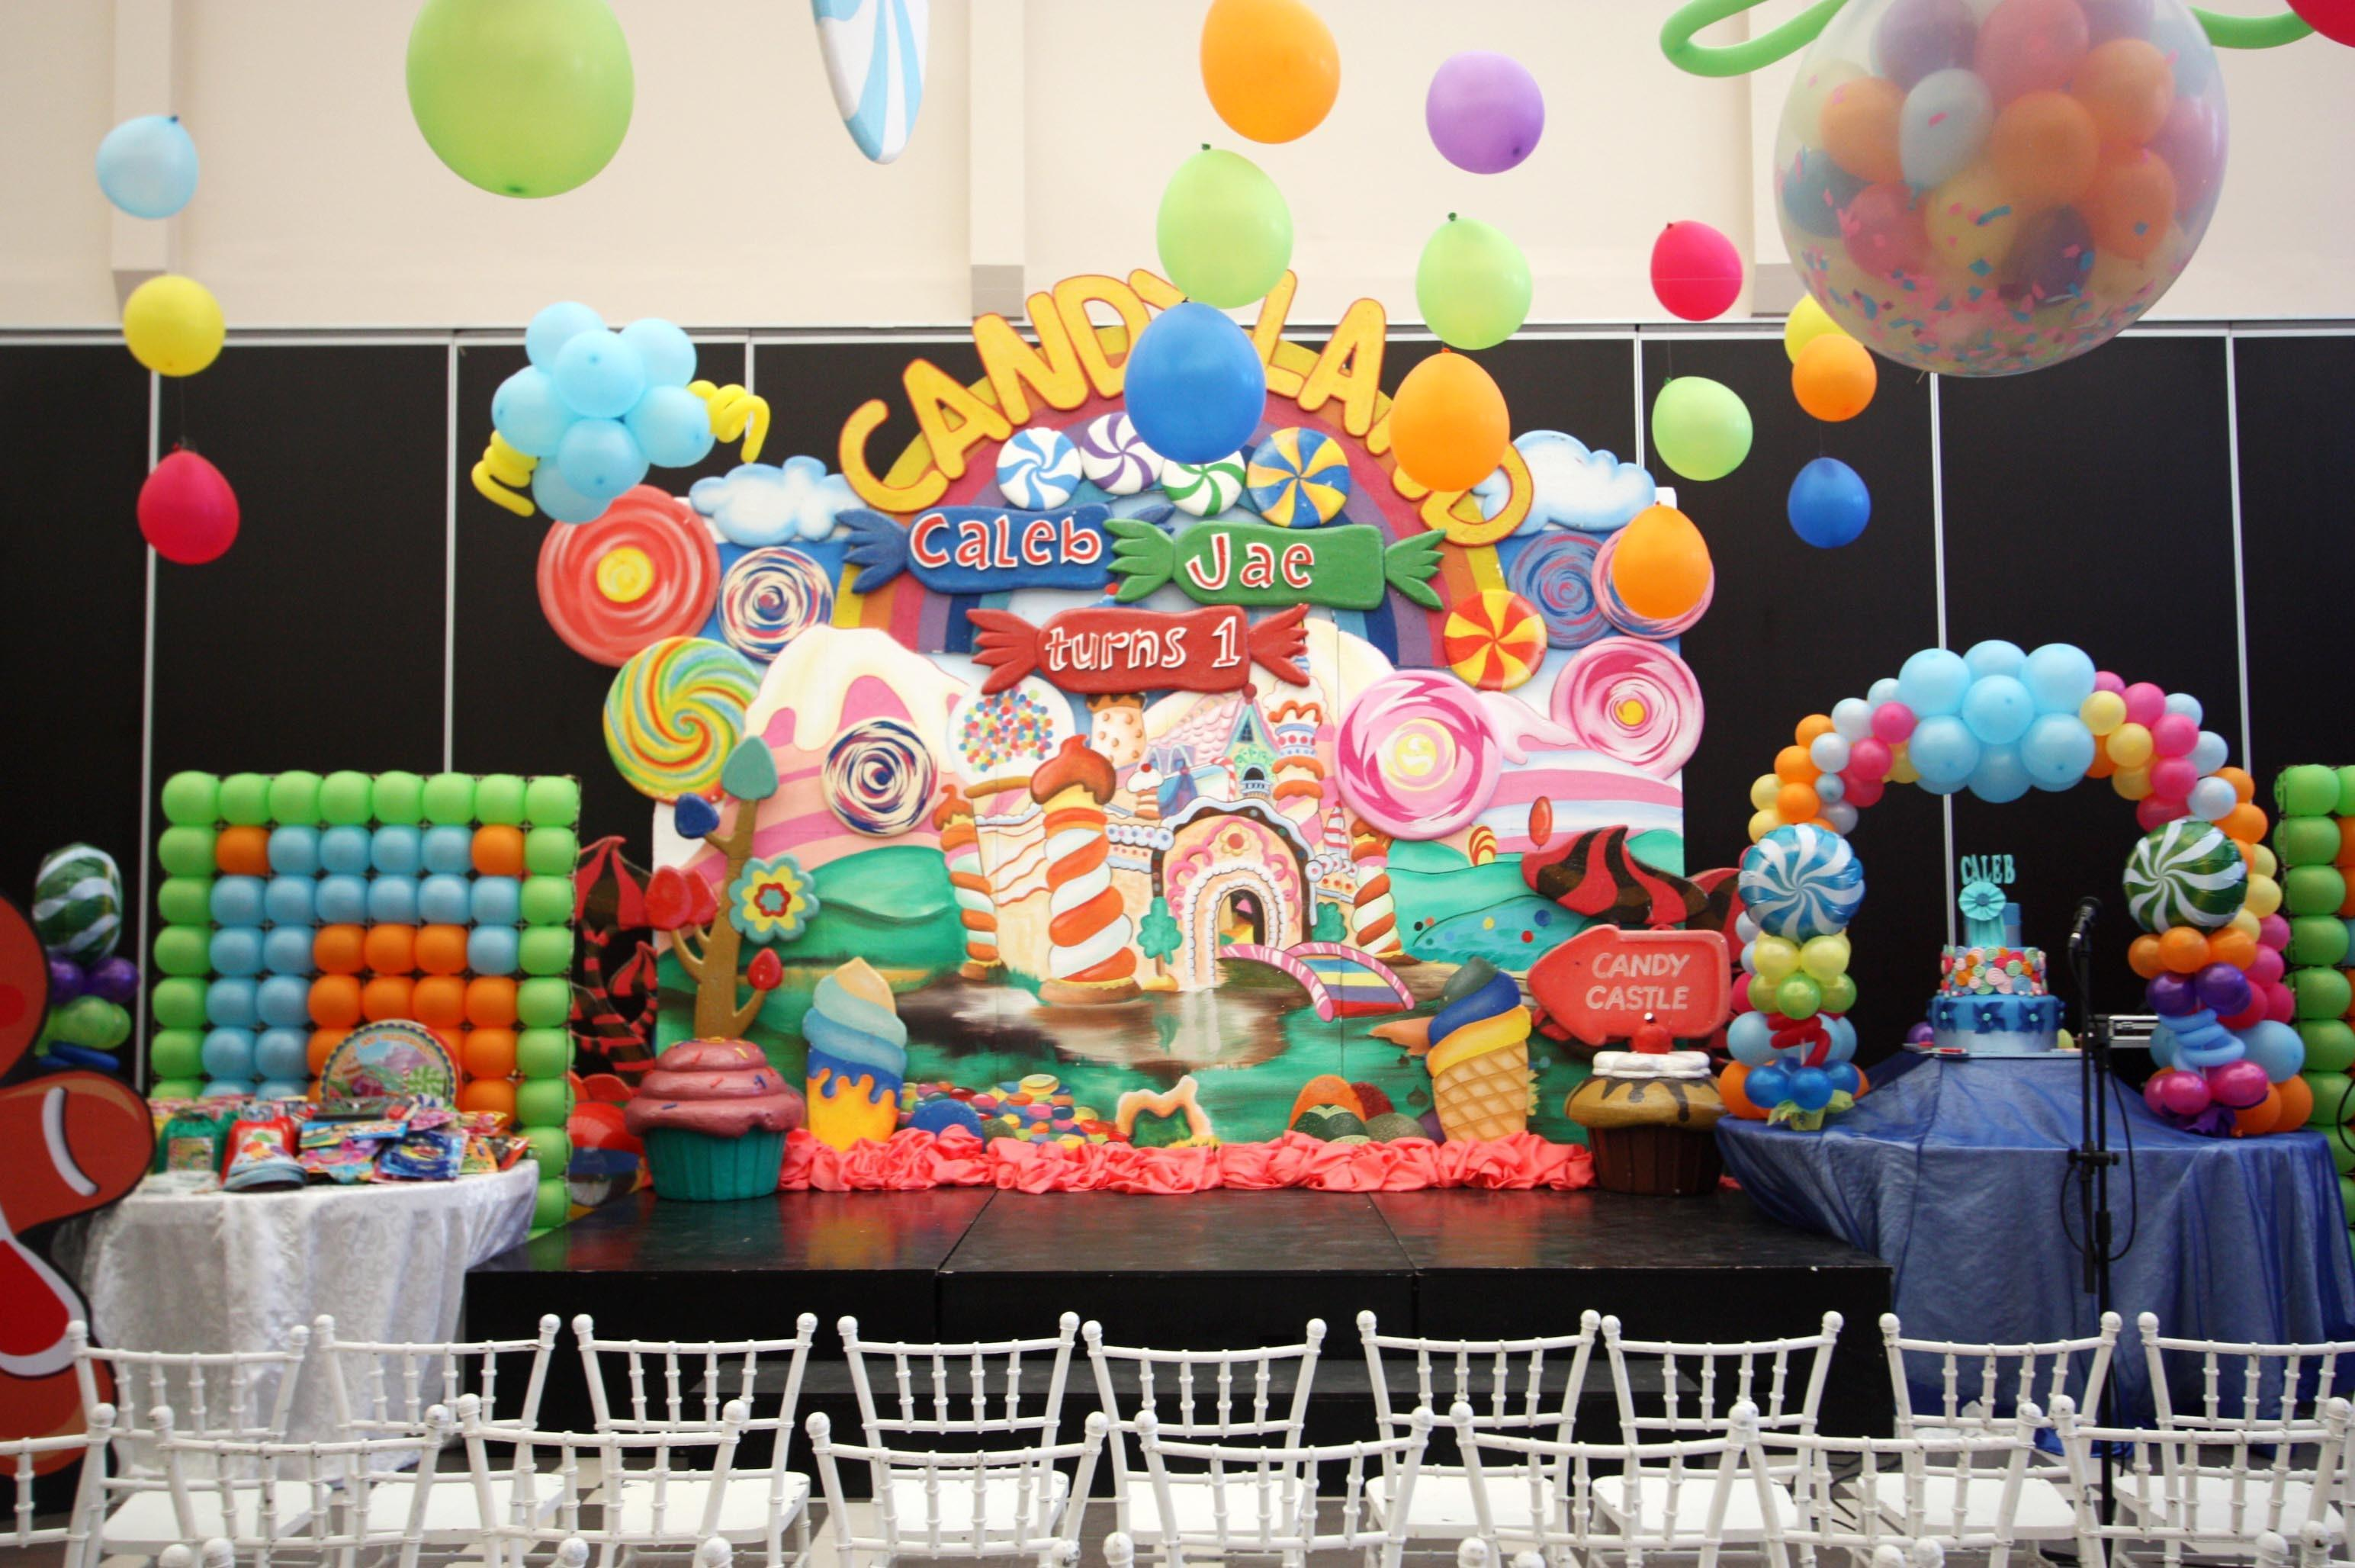 Caleb Candyland Birthday Hanging Gardens Events Venue